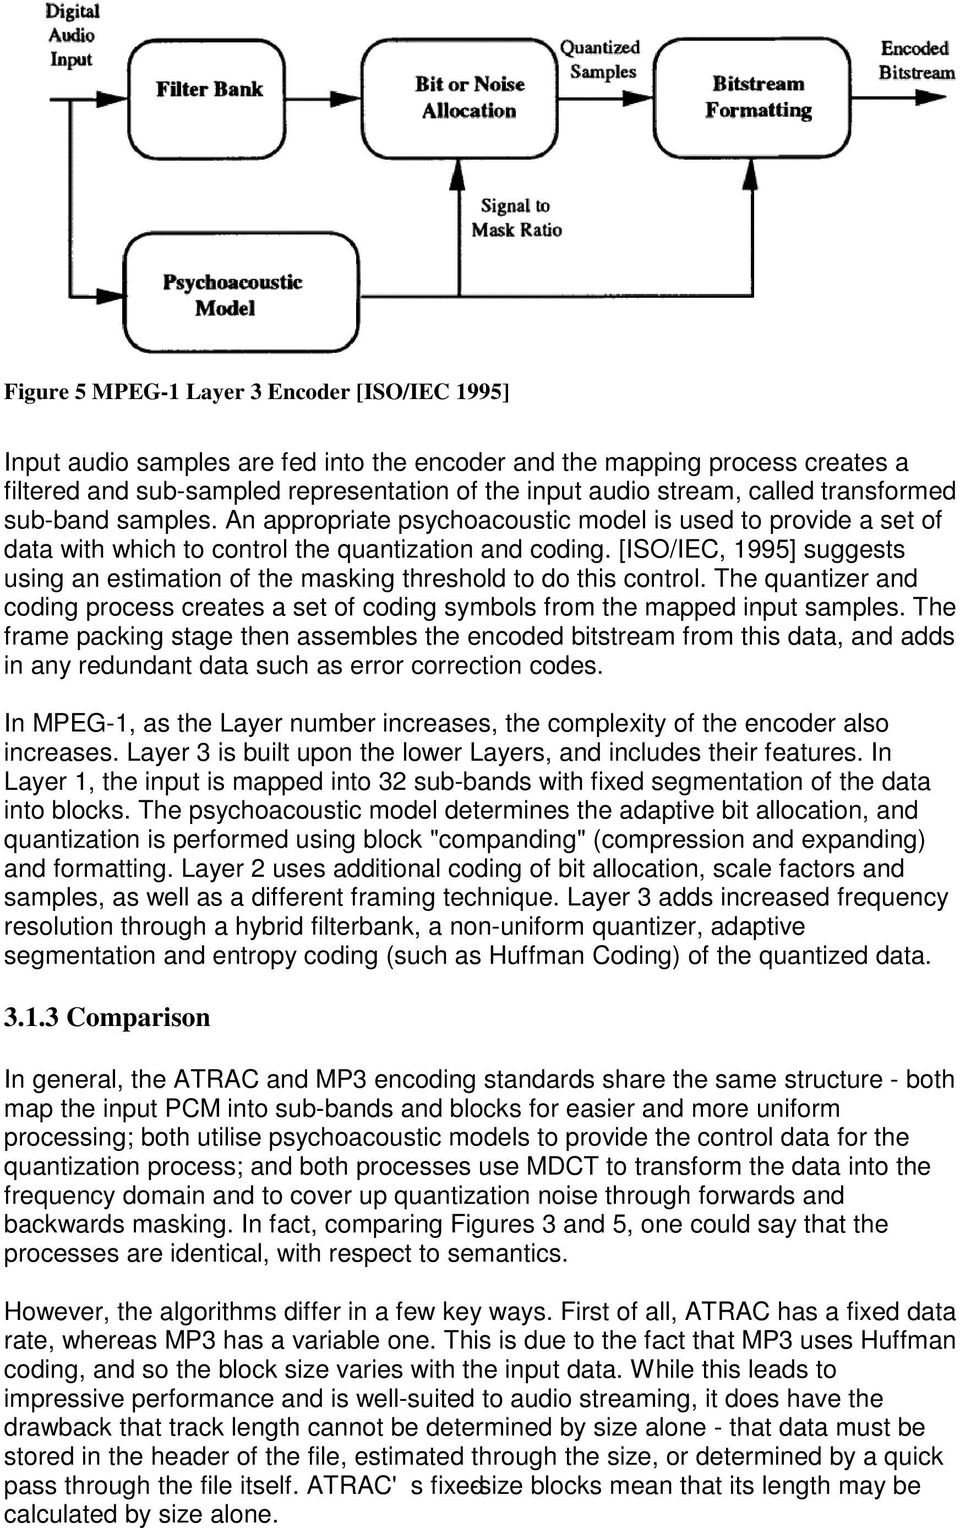 A Comparison Of The Atrac And Mpeg 1 Layer 3 Audio Compression Block Diagram Iso Iec 1995 Suggests Using An Estimation Masking Threshold To